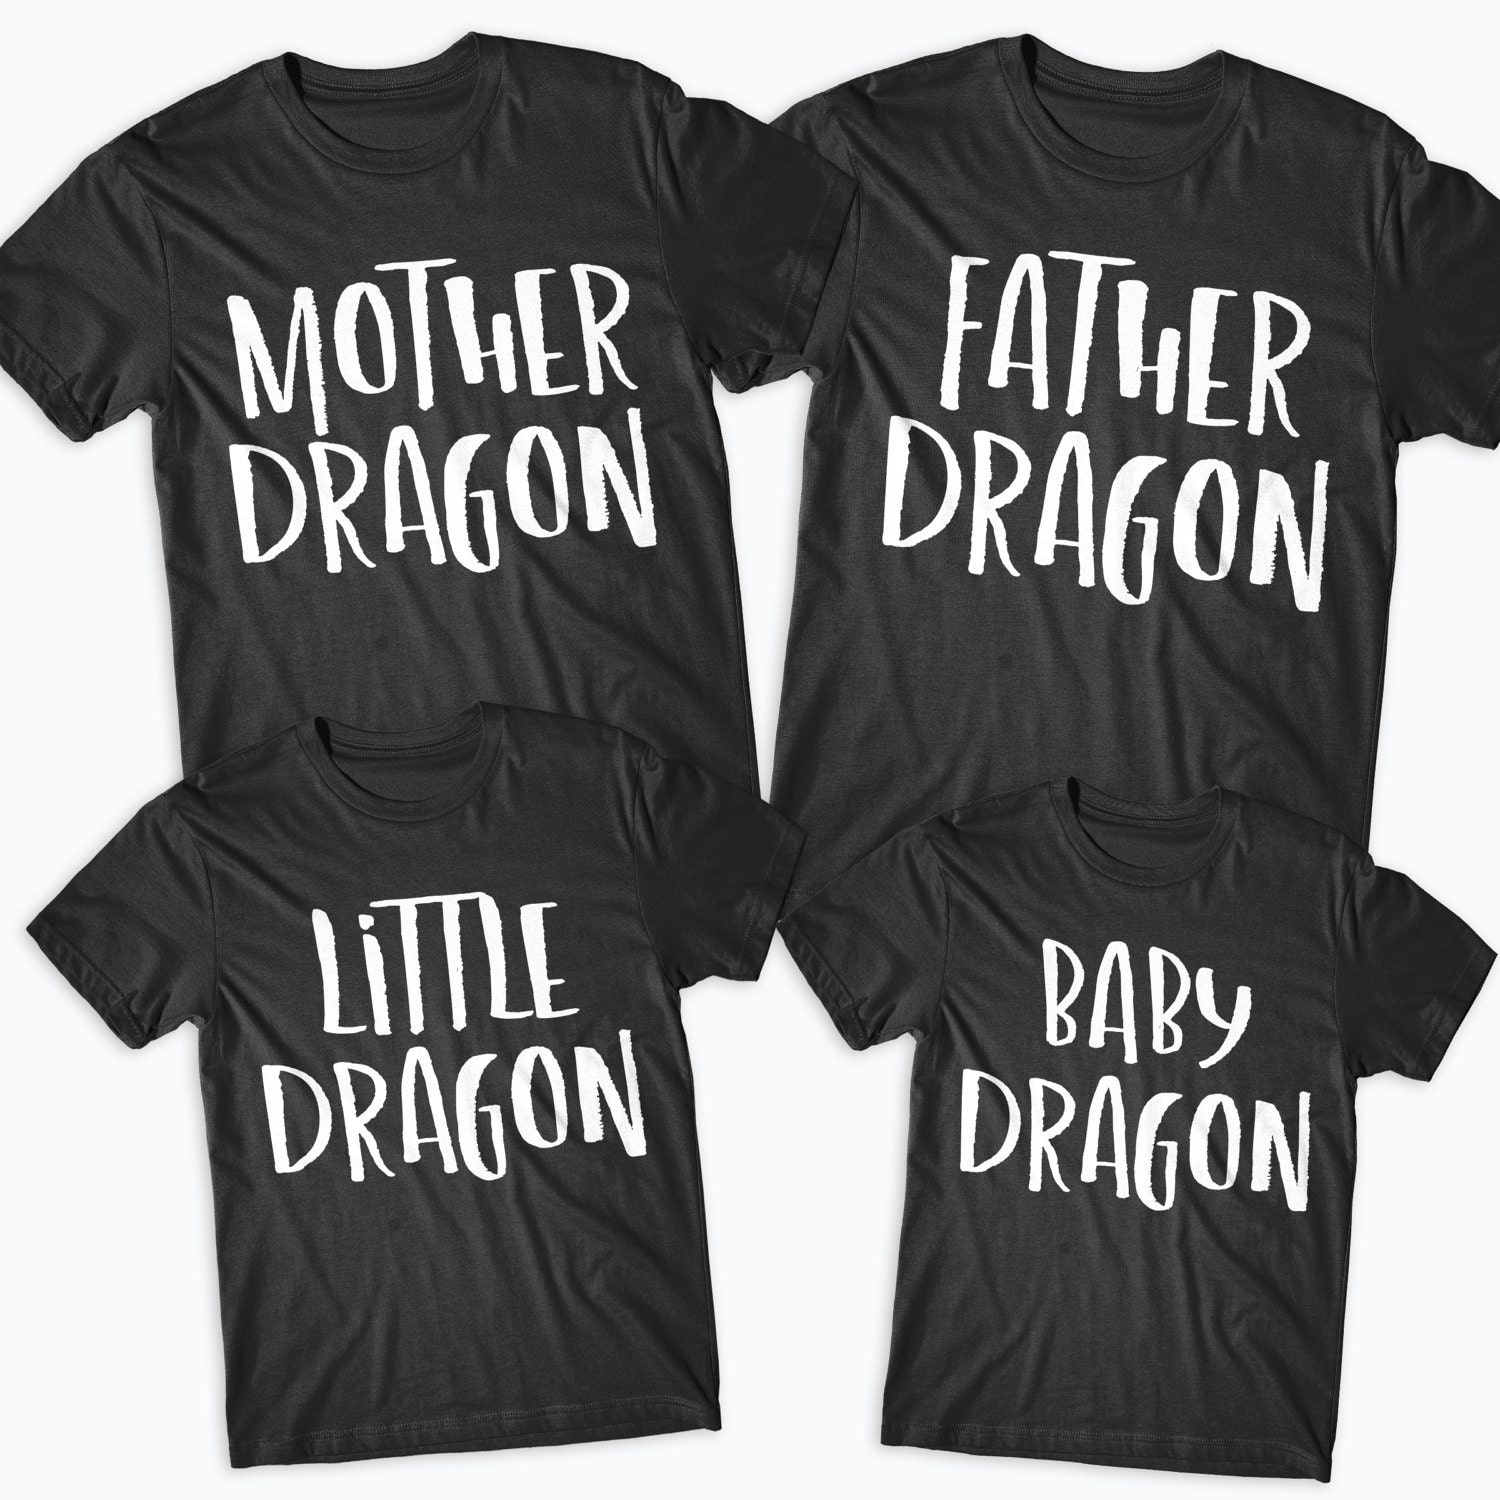 4b406d0b Dragon Matching Family Tshirts Mother Of Dragons Father Mother | Etsy